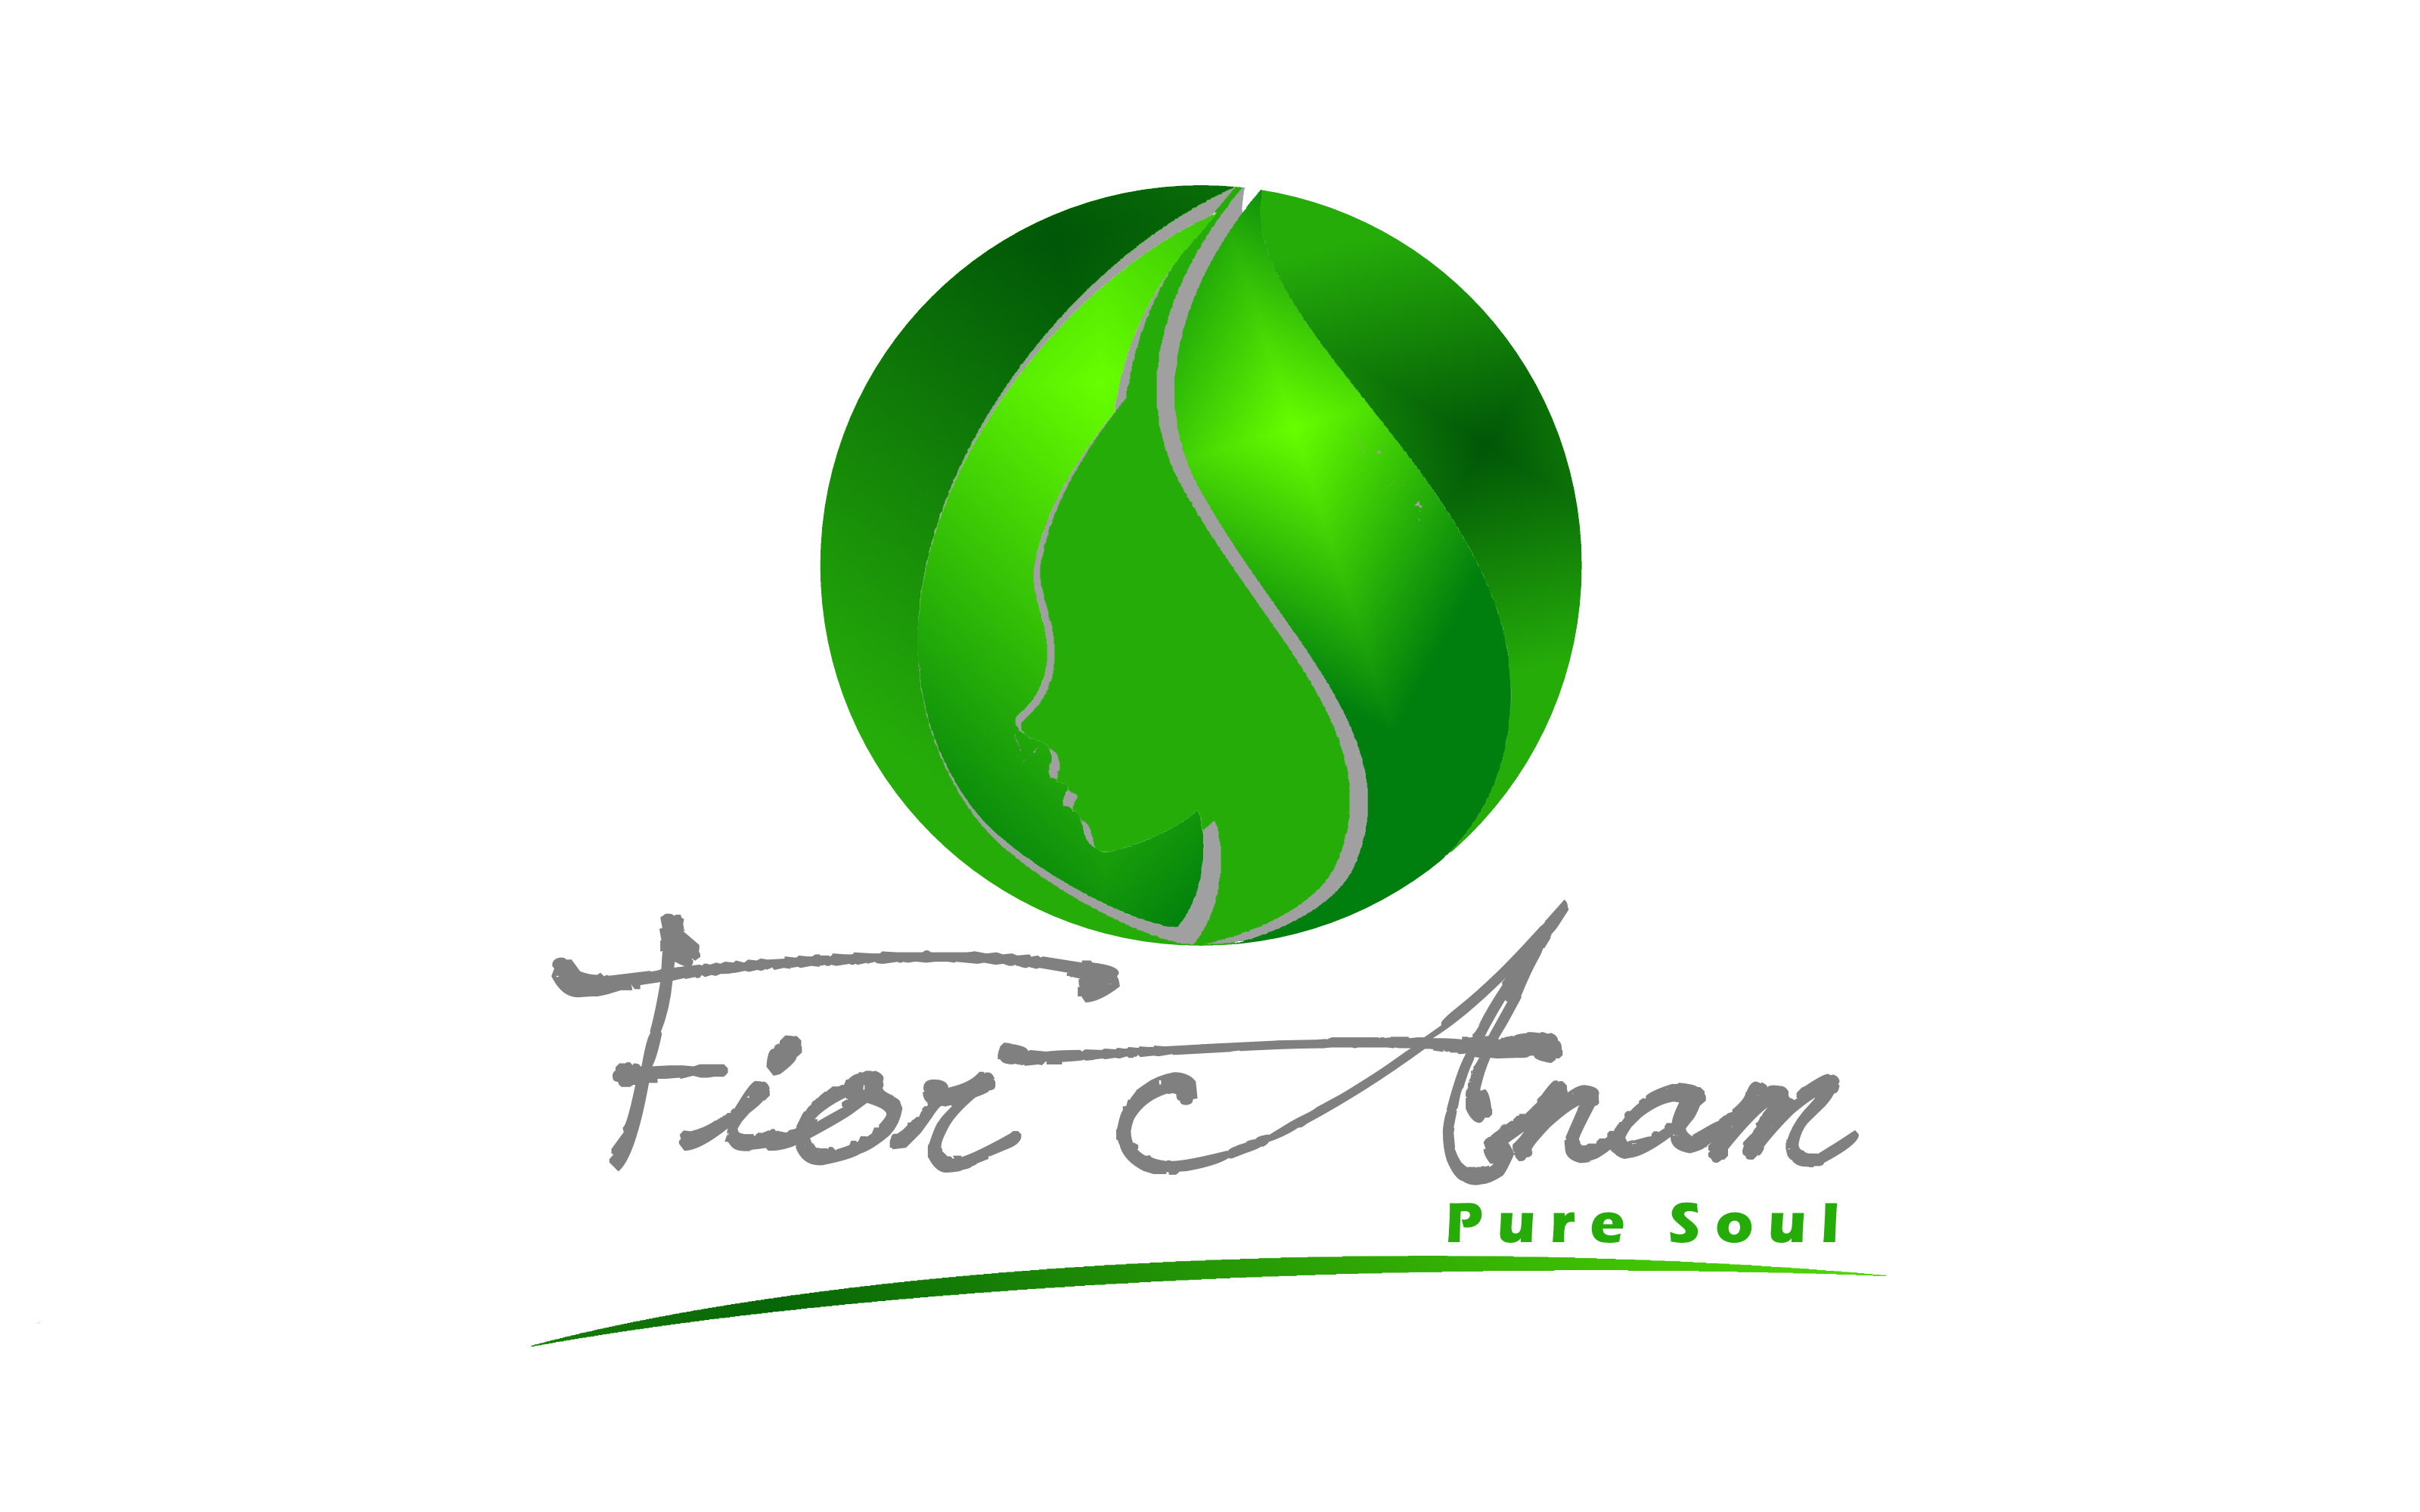 Logo Design by Roberto Bassi - Entry No. 337 in the Logo Design Contest Creative Logo Design for Fior Anam.